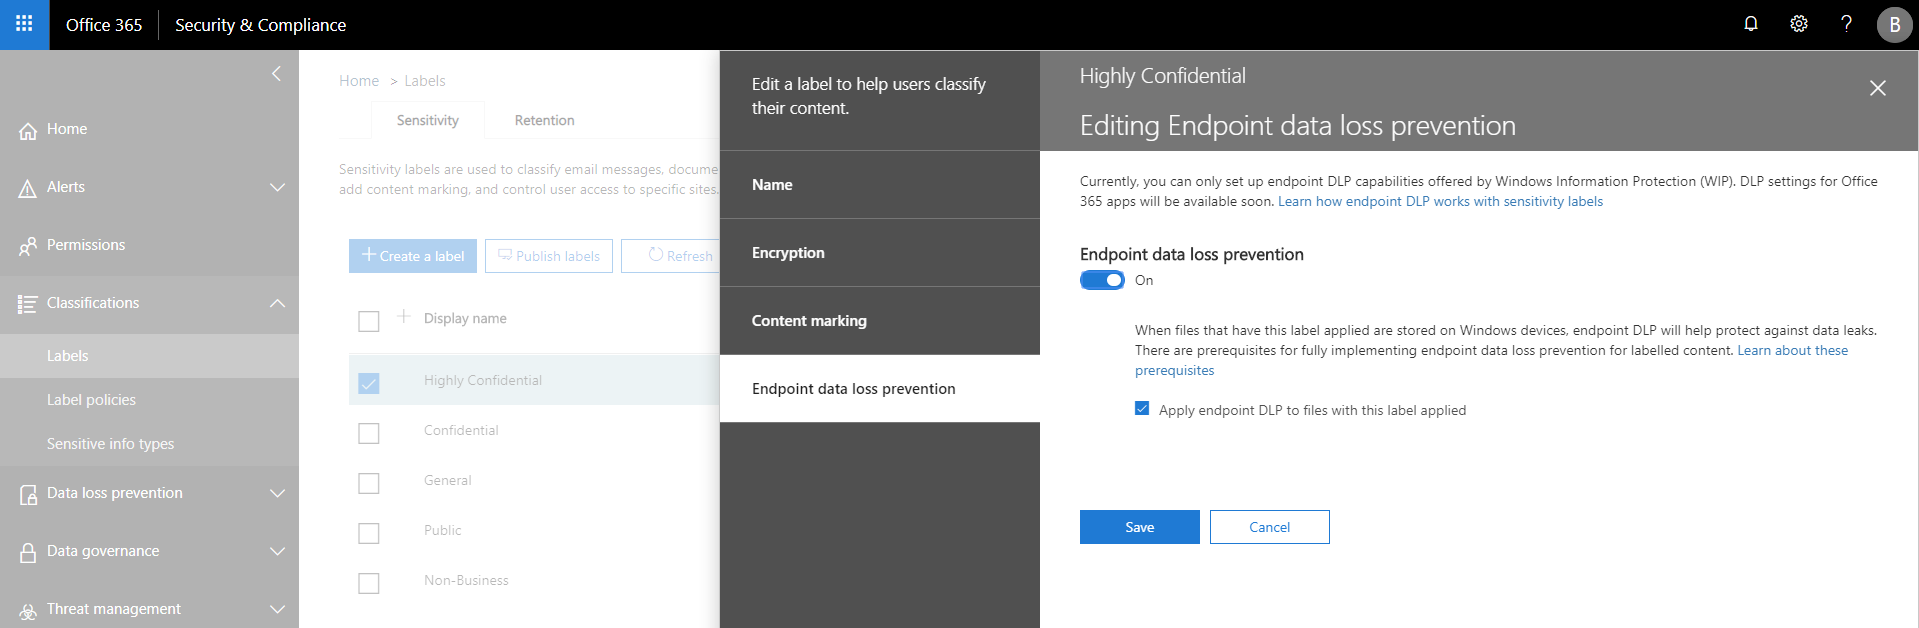 Figure 4. Office Security & Compliance Center – Endpoint data loss prevention configuration page